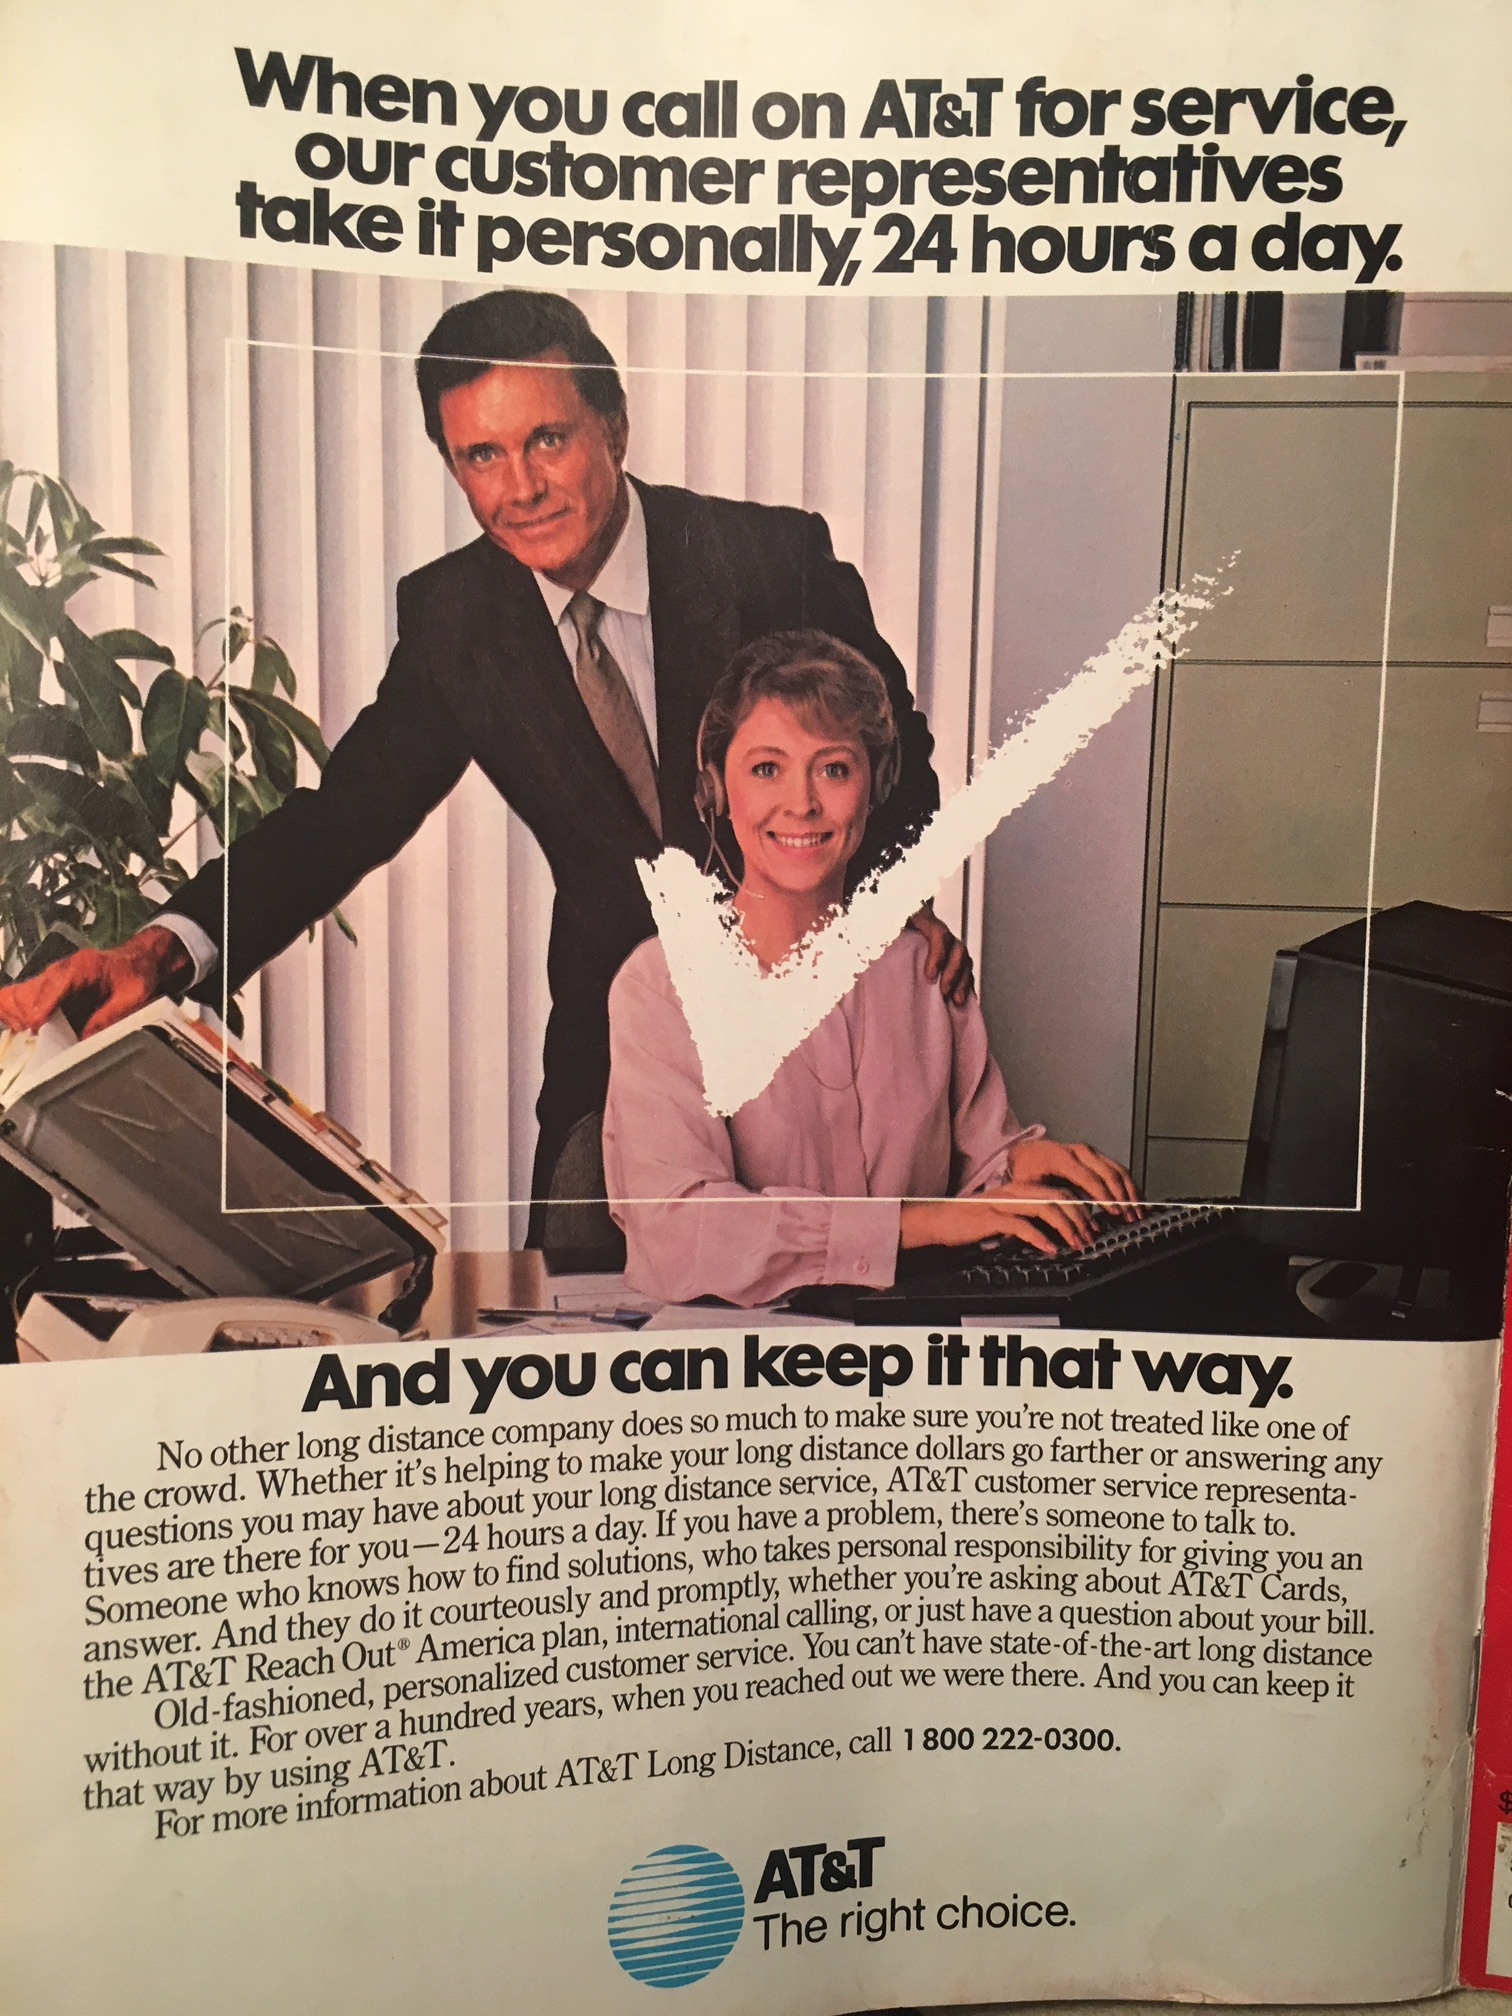 Here's another piece of that magazine that is just so very … 80s. Yowza, that did not age well.